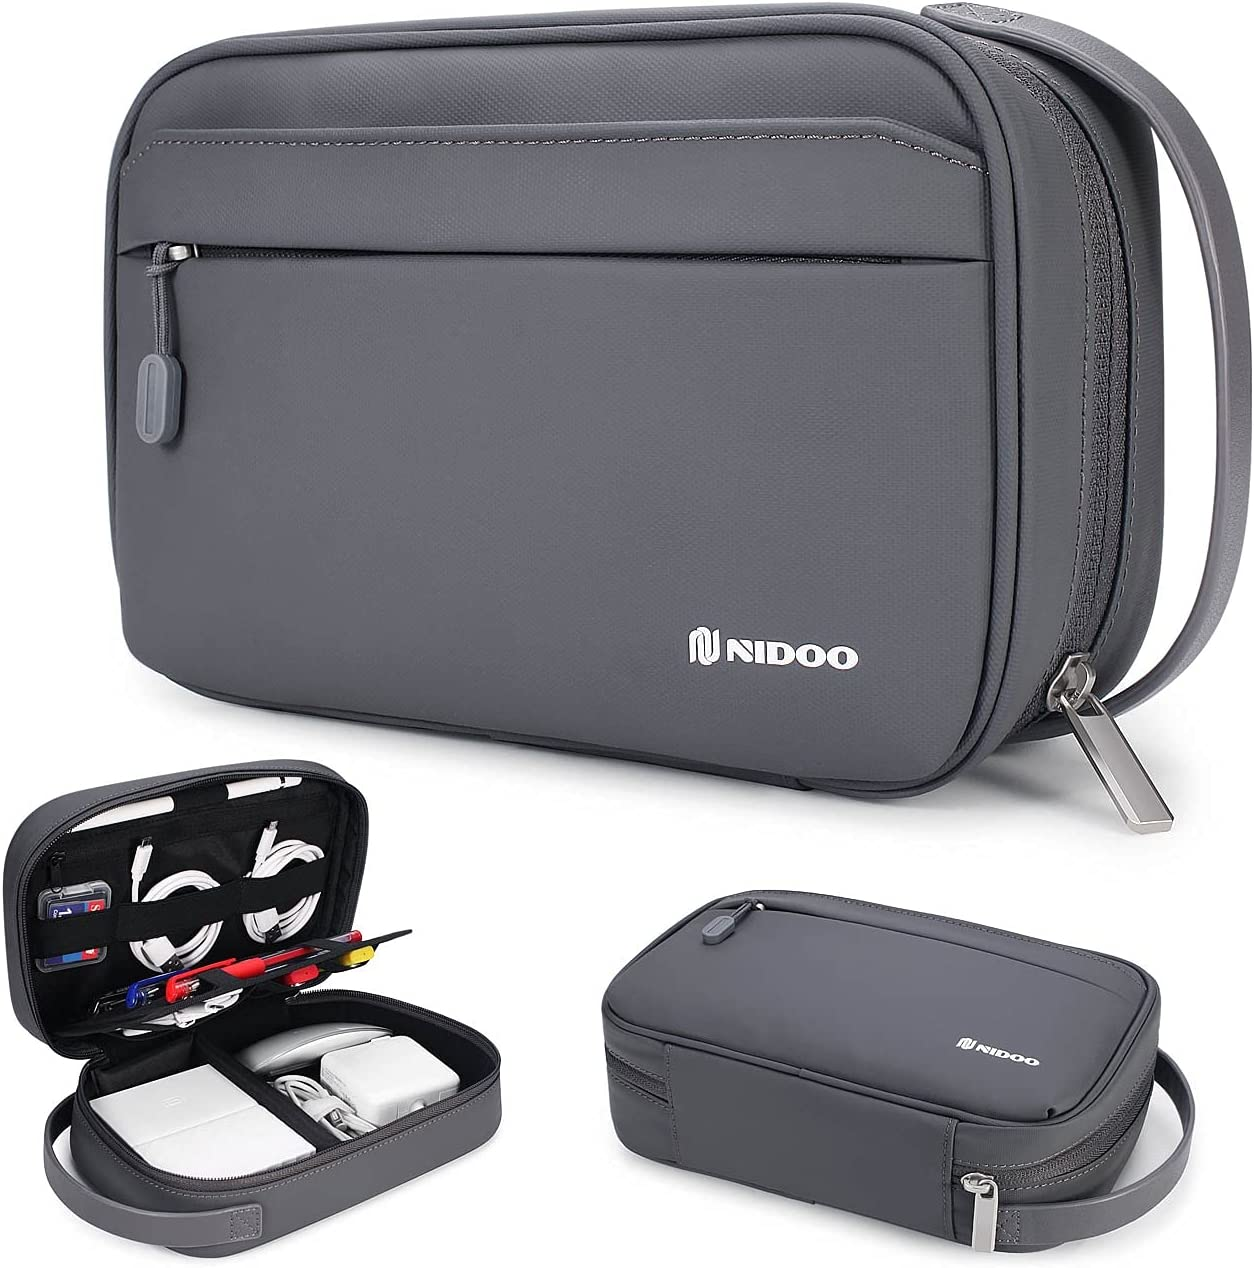 NIDOO Travel Cable Organizer Bag, Waterproof Electronic Accessories Case Portable Storage Bag for Hard Drives, SD Card, Charging Cable, Power Adapter, iPad Mini, Kindle, Mouse, Usb, Phone, Airpods Etc